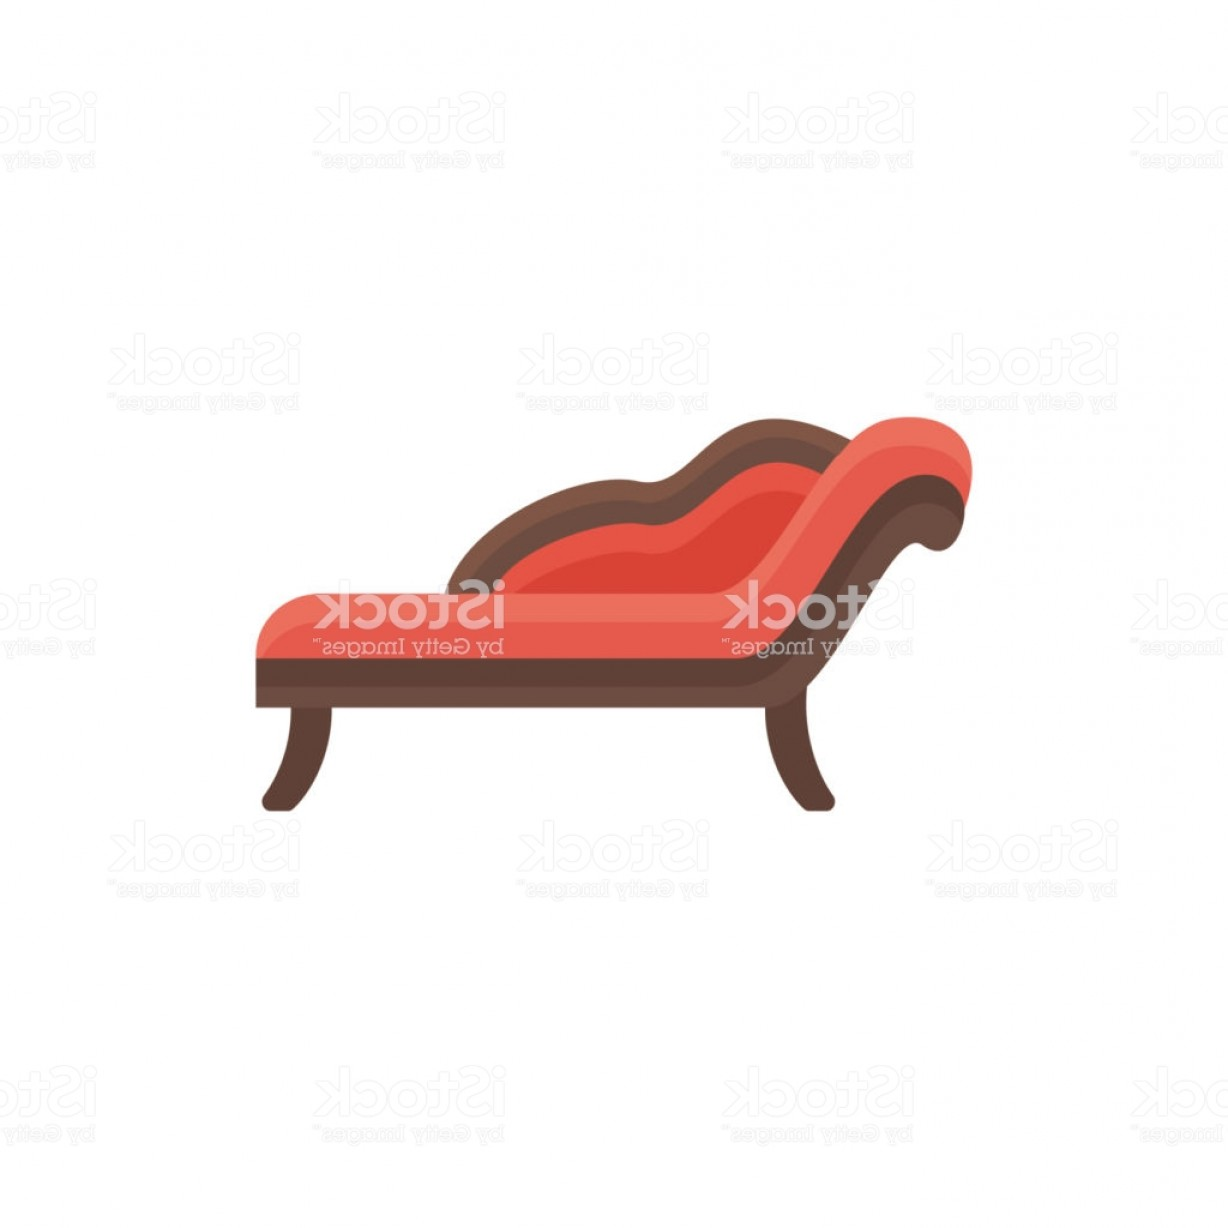 Back Of The Couch Vector: Red Chaise Lounge Sofa Vector Illustration Flat Icon Of Settee Element Of Modern Gm